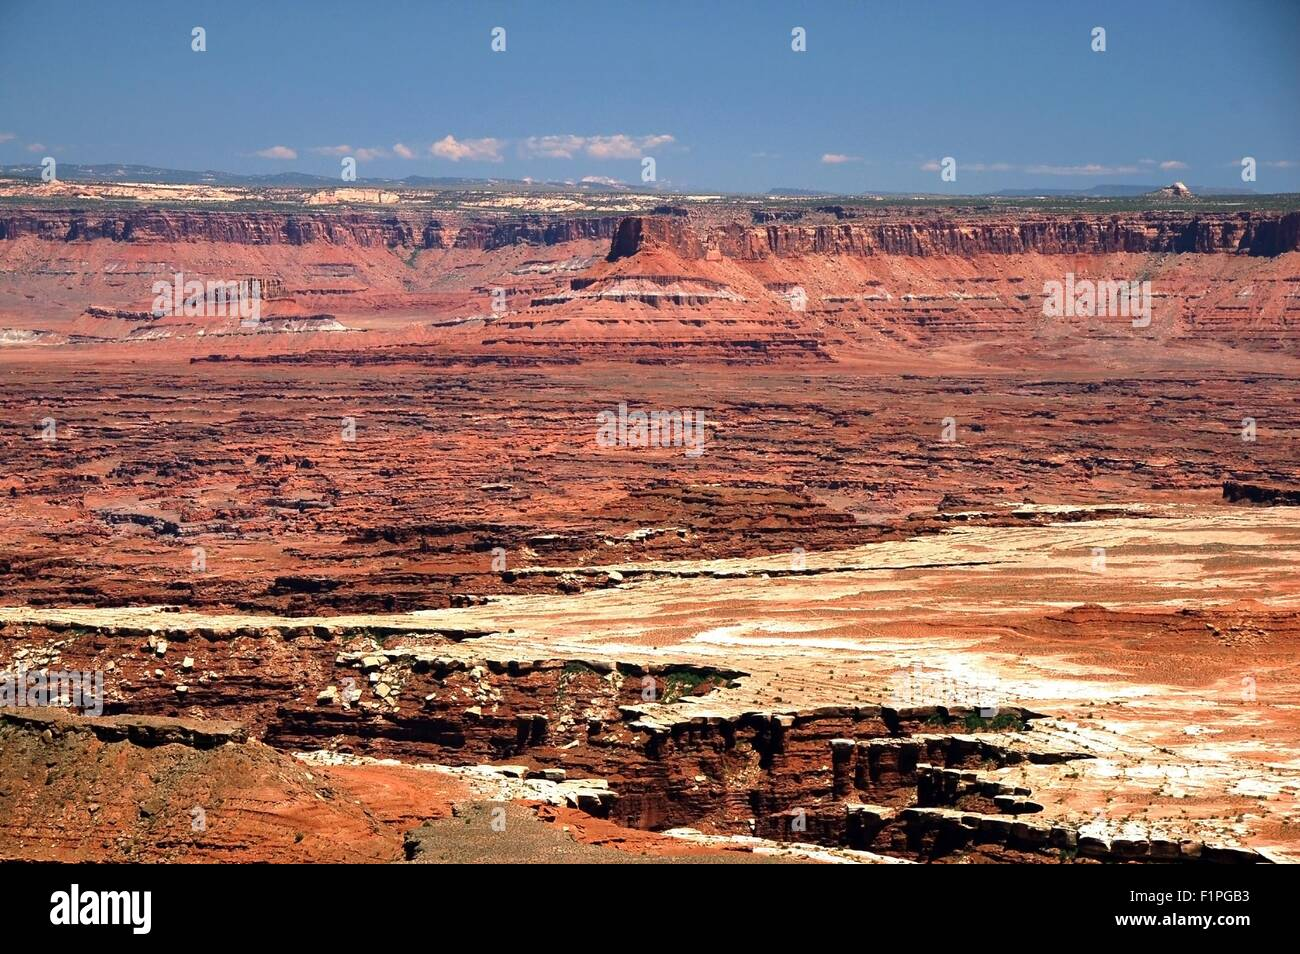 Canyonlands Landscape. Canyonland National Park in the Utah State. USA. Panoramic Photo. - Stock Image